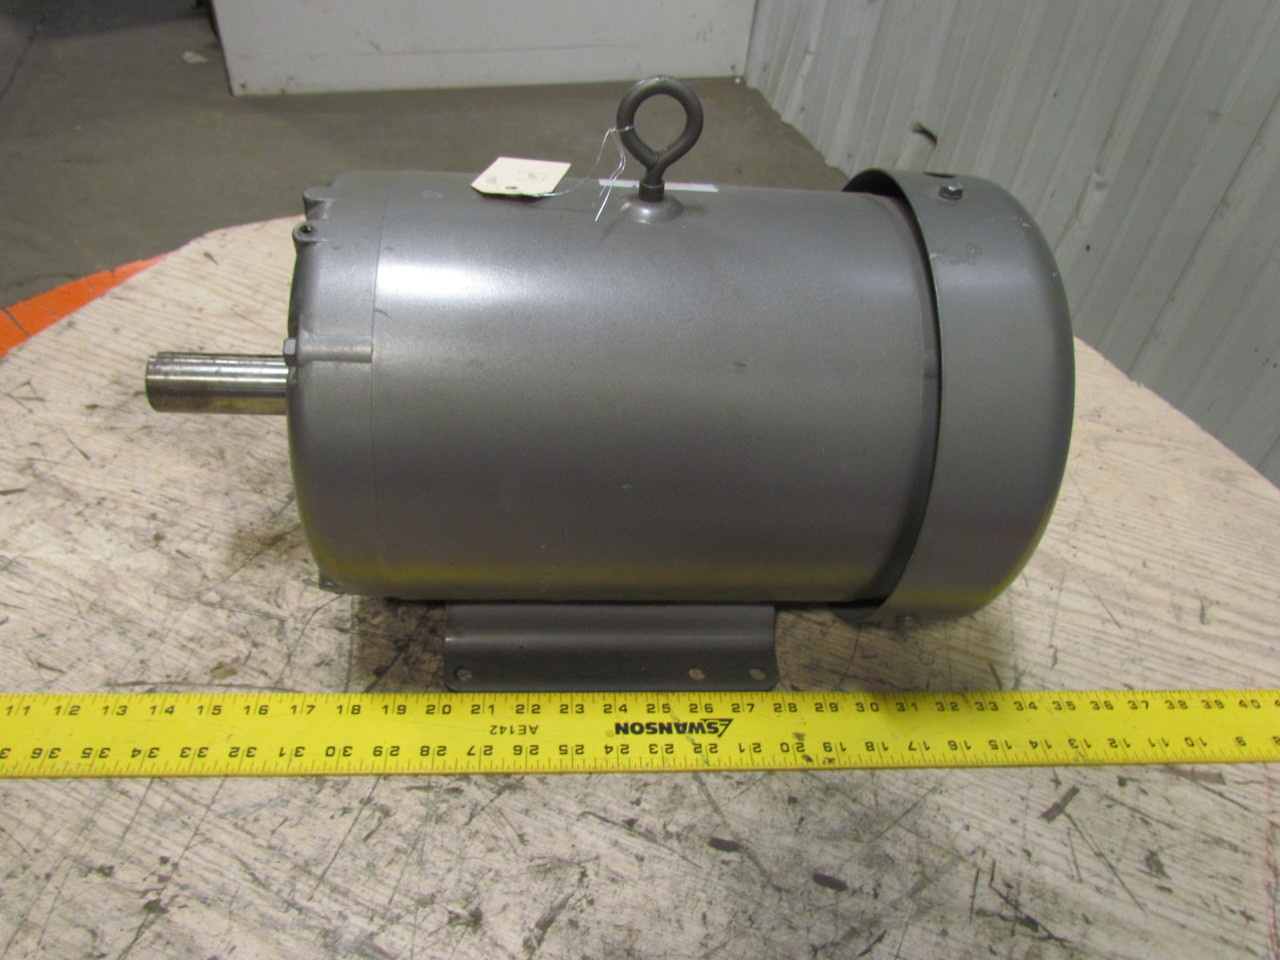 Baldor m1709t 3 phase ac electric motor 1725 850 rpm 460v for 7 5 hp three phase motor